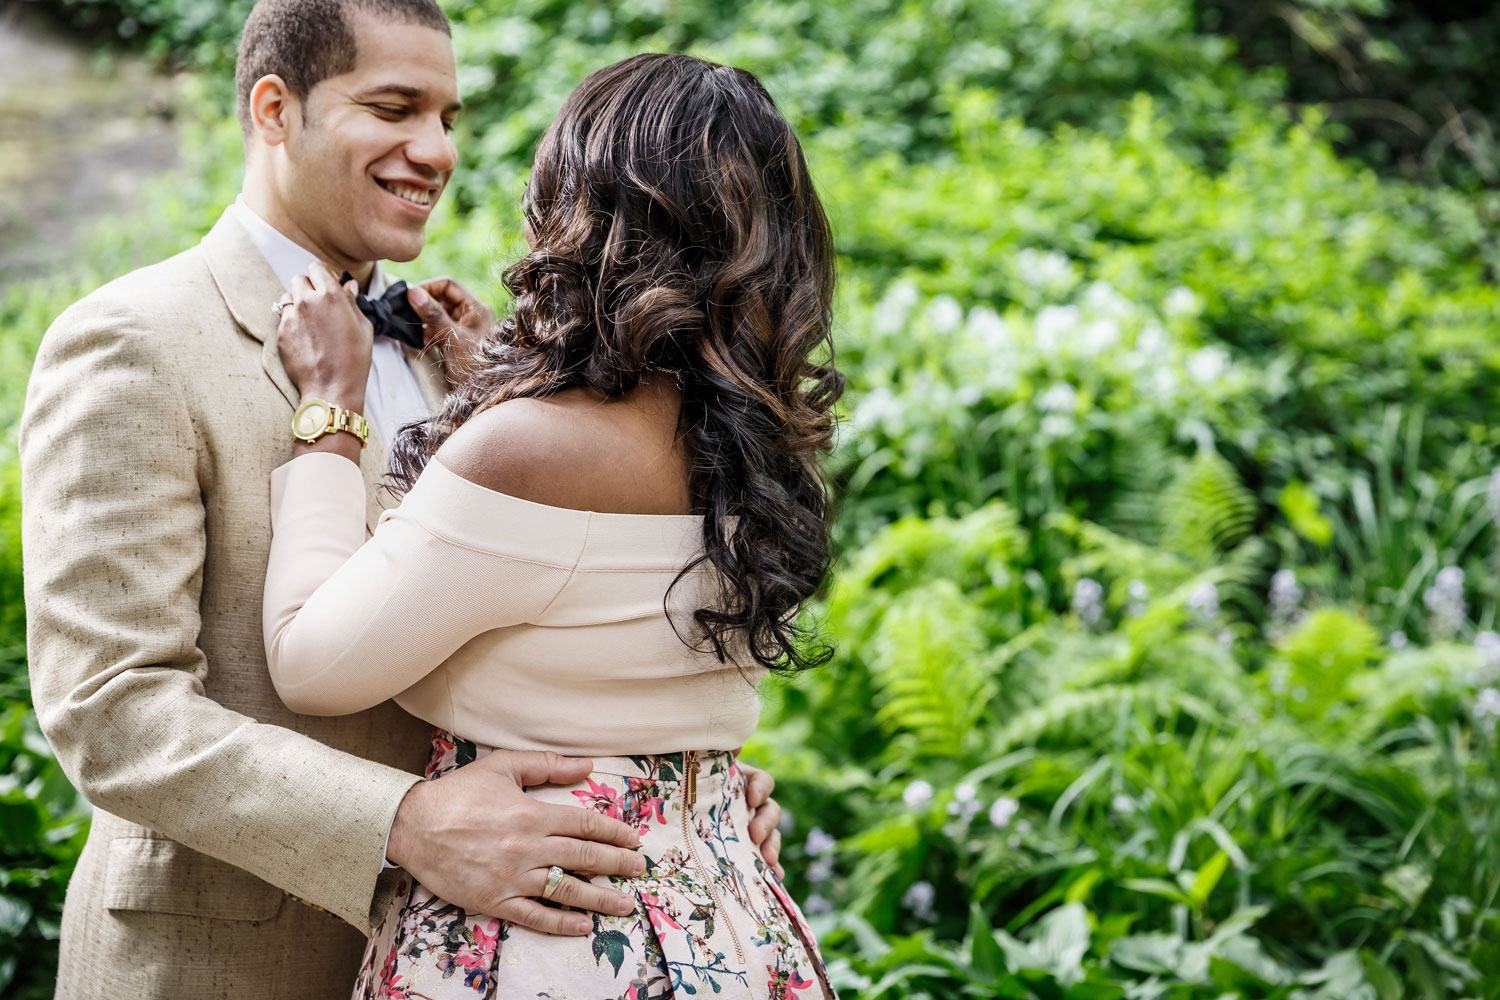 New York City central park engagement session photo by Amy Anaiz bride to be tightening bow tie